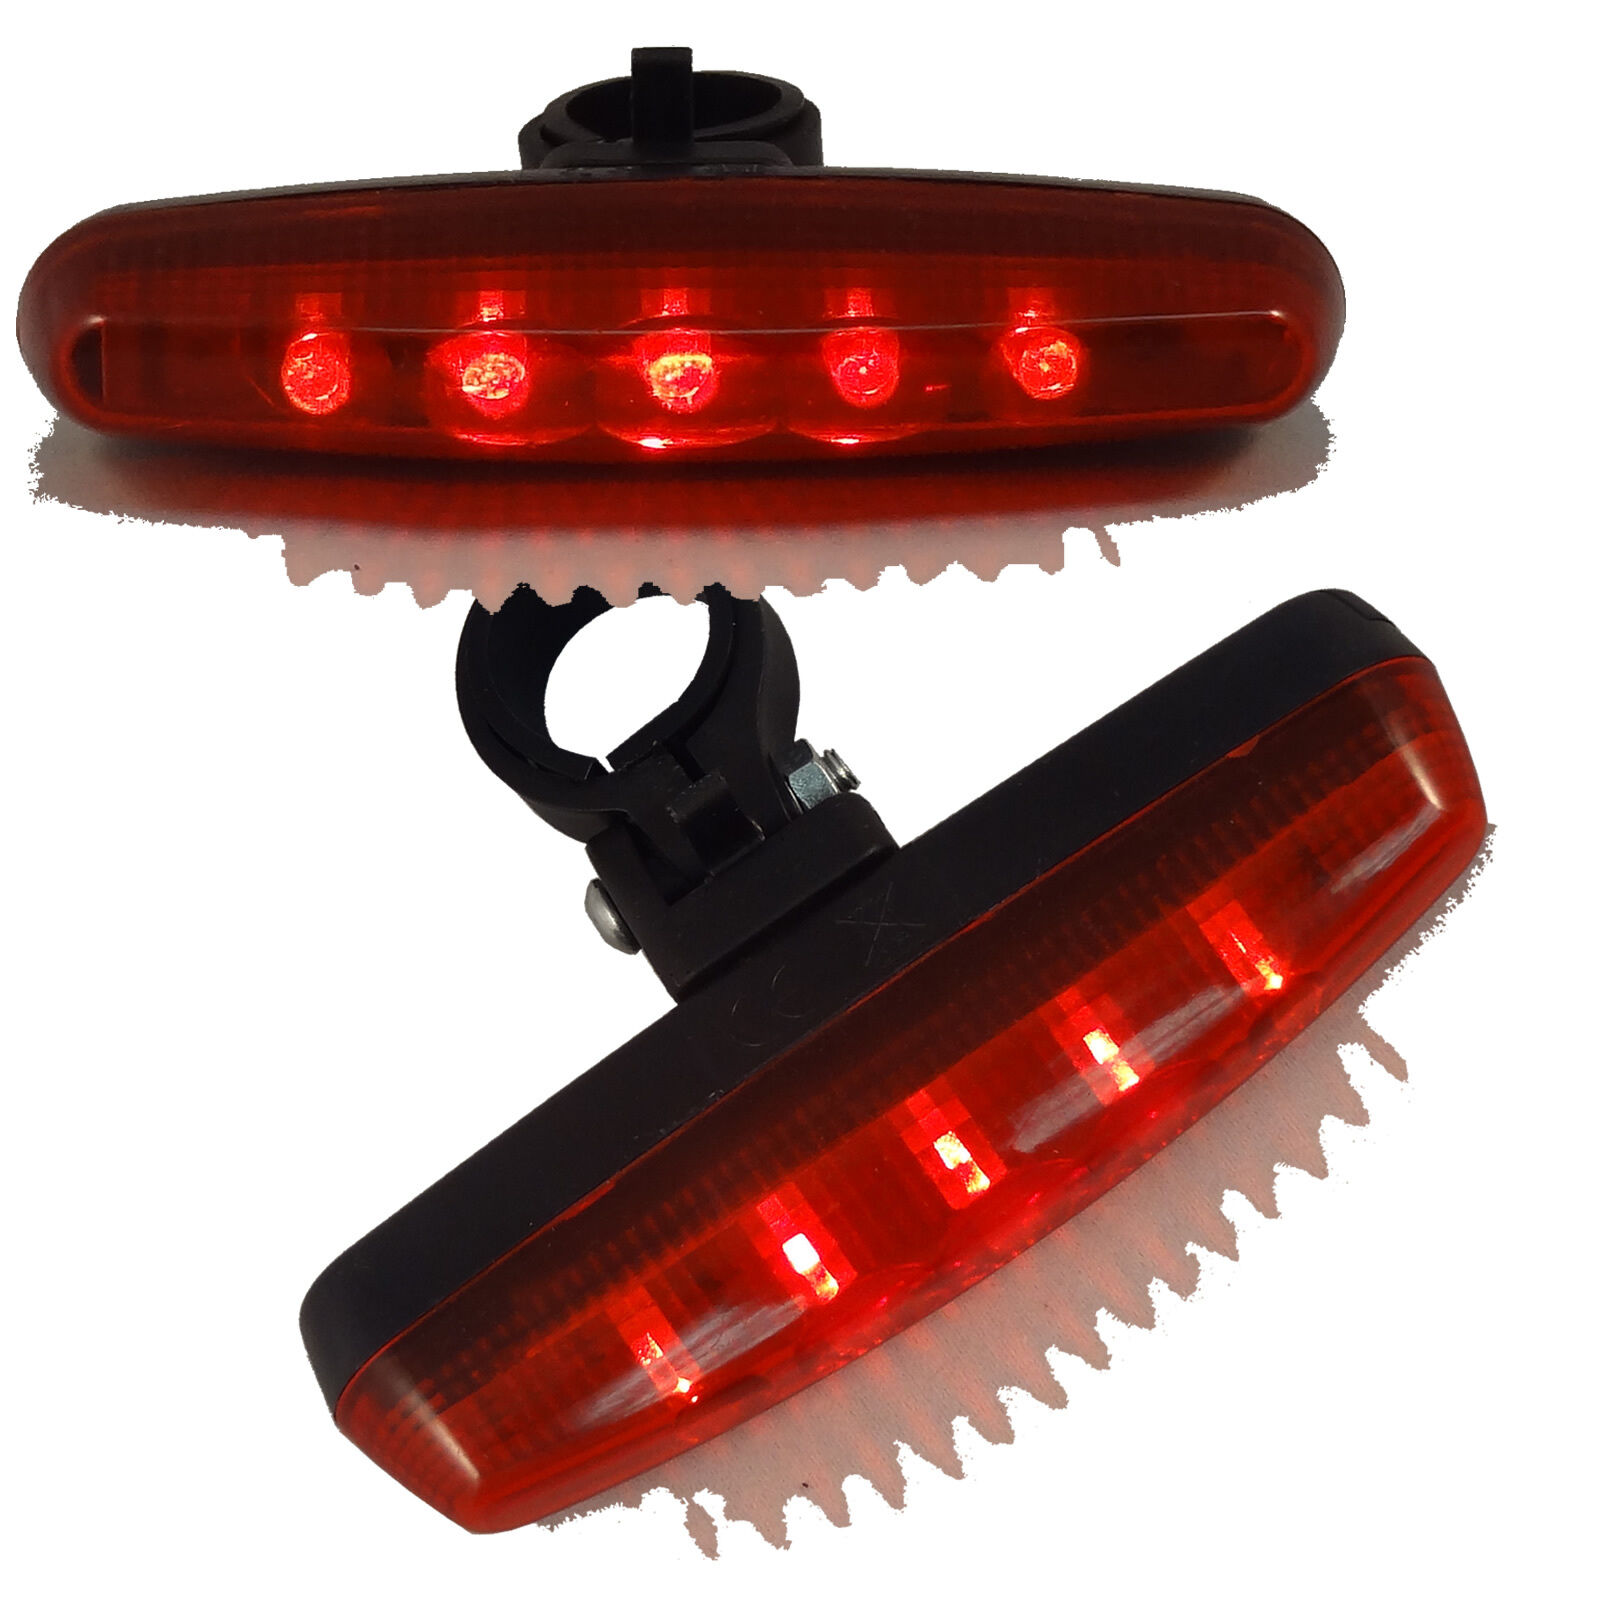 5 Led Red Tail Light 7 Mode Safety Flashing Rear Lamp For Bike Bicycle Cycling 1 Of 12free Shipping